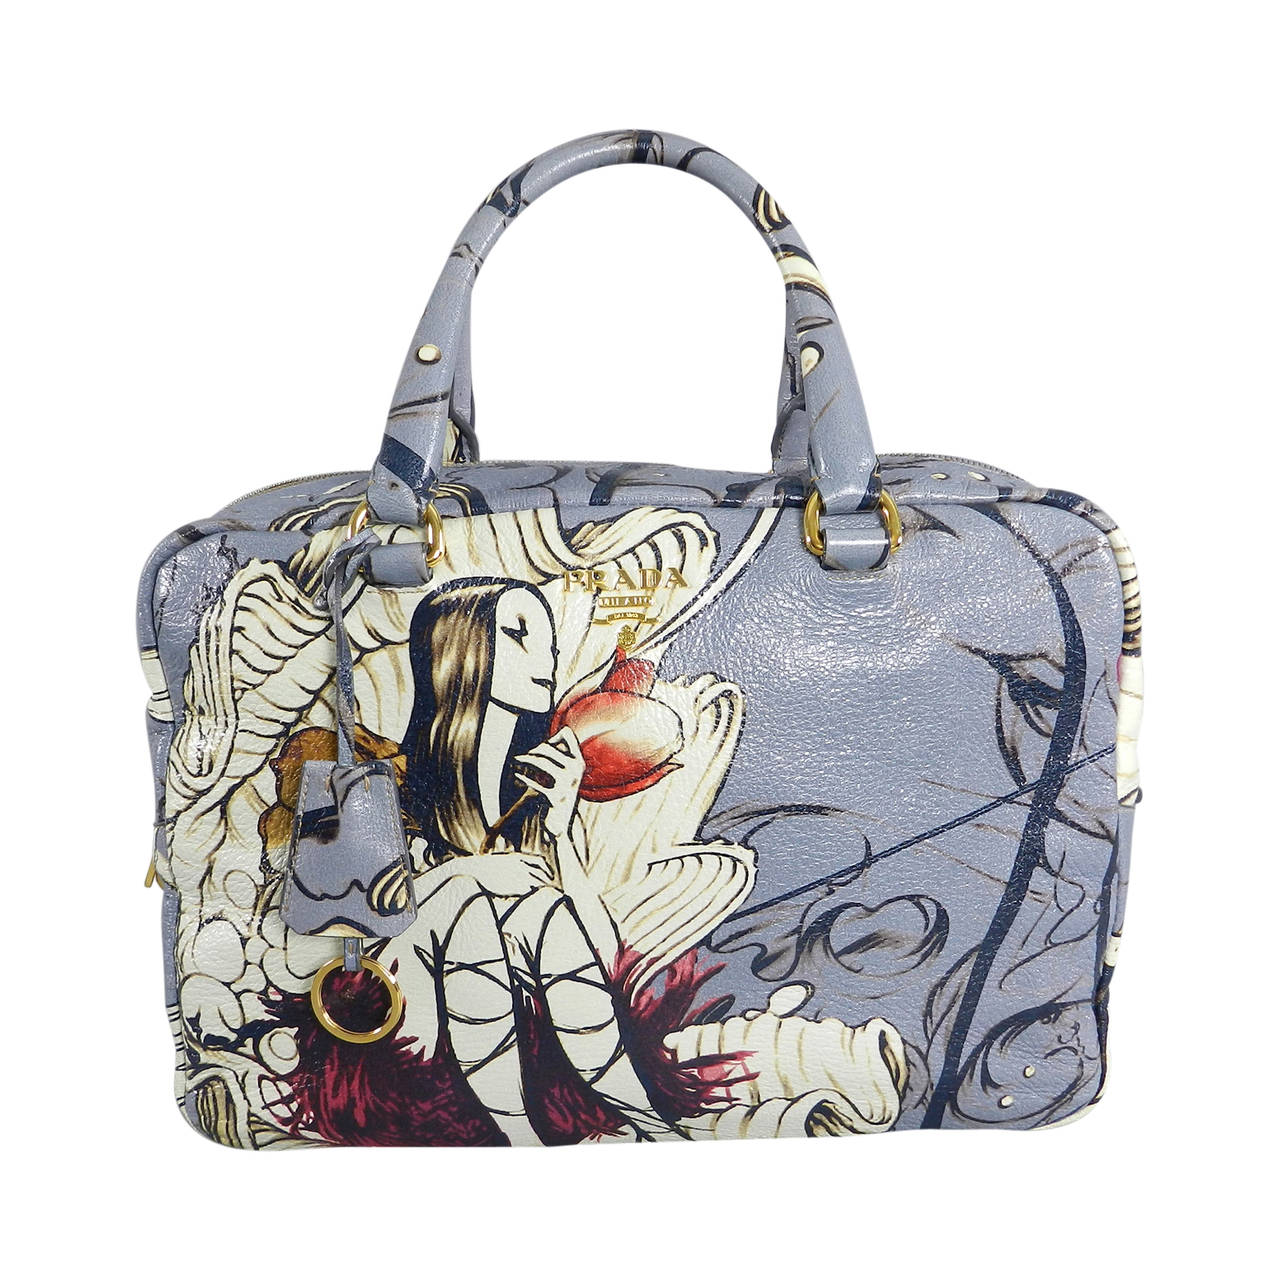 e9212b3f97b7 Prada Fairy Bag - Limitied Edition James Jean at 1stdibs